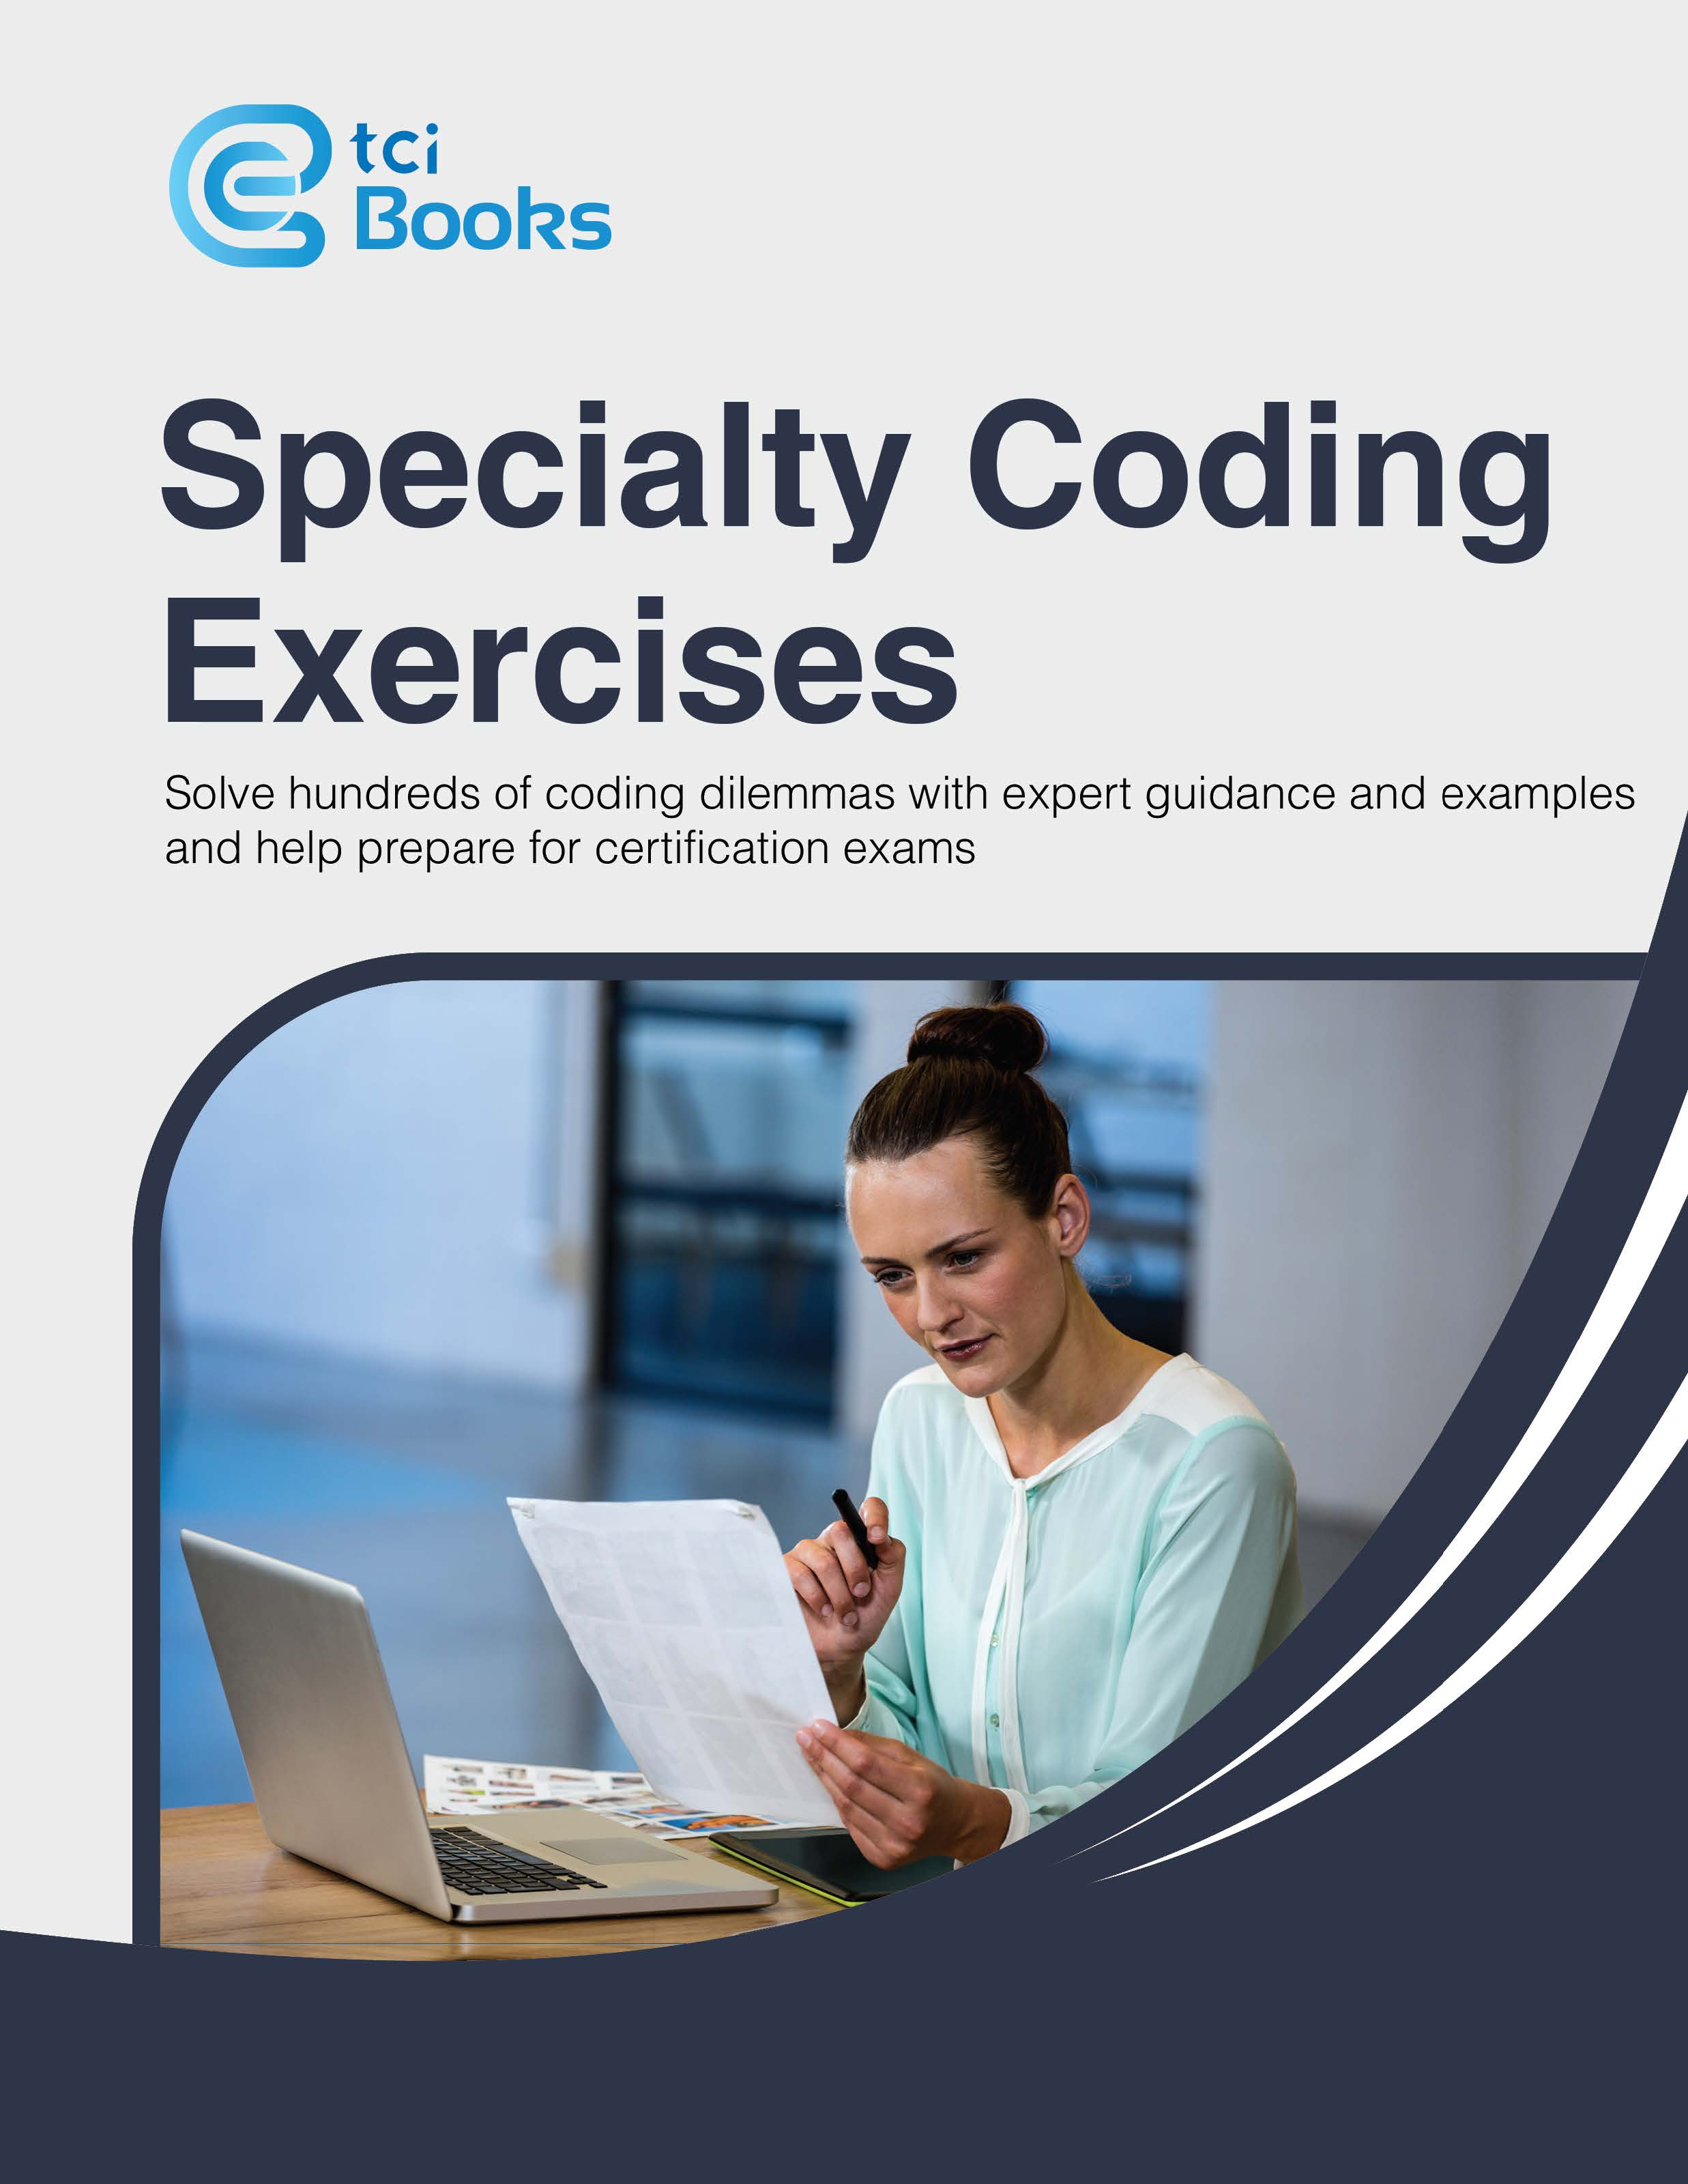 Vendor book store aapc specialty coding exercisestci publisher the coding institute llc isbn 978 1 63527 296 3 price 149 fandeluxe Choice Image